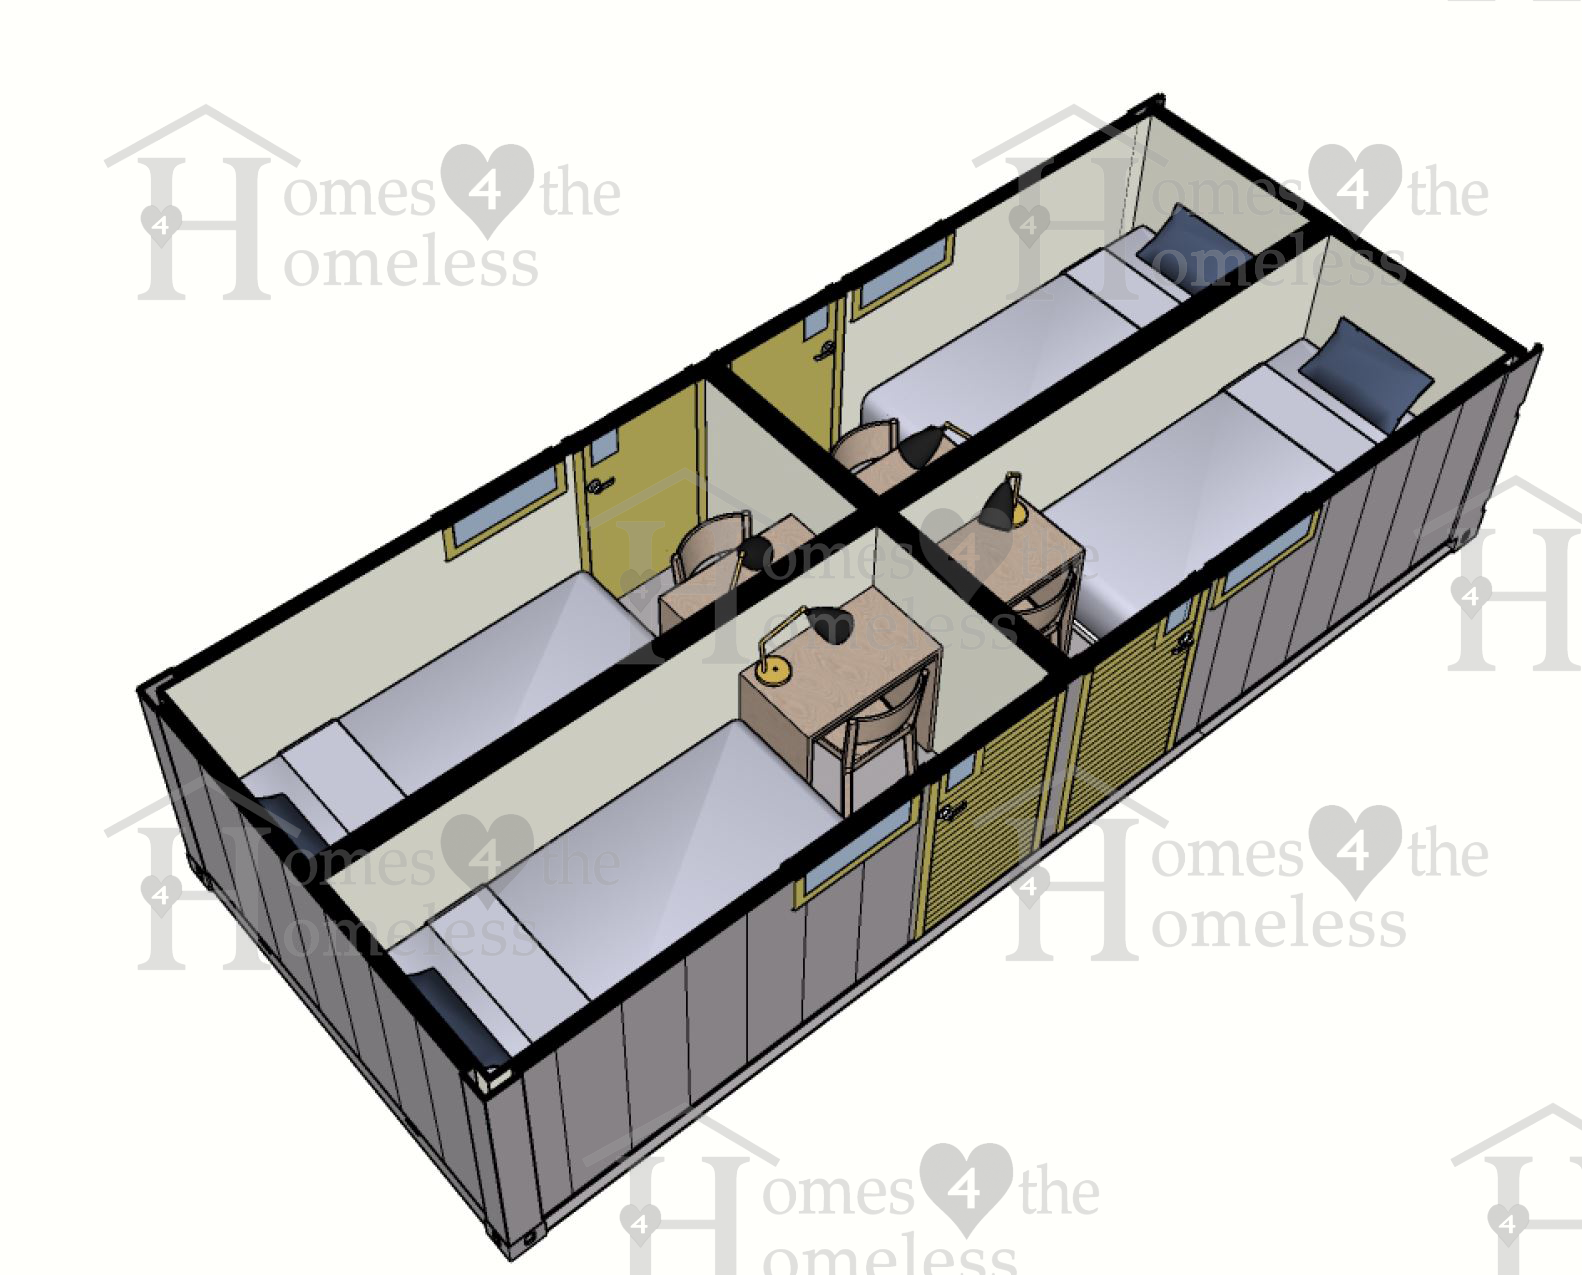 Type 1 four bedroom tiny home 4 homeless-0001